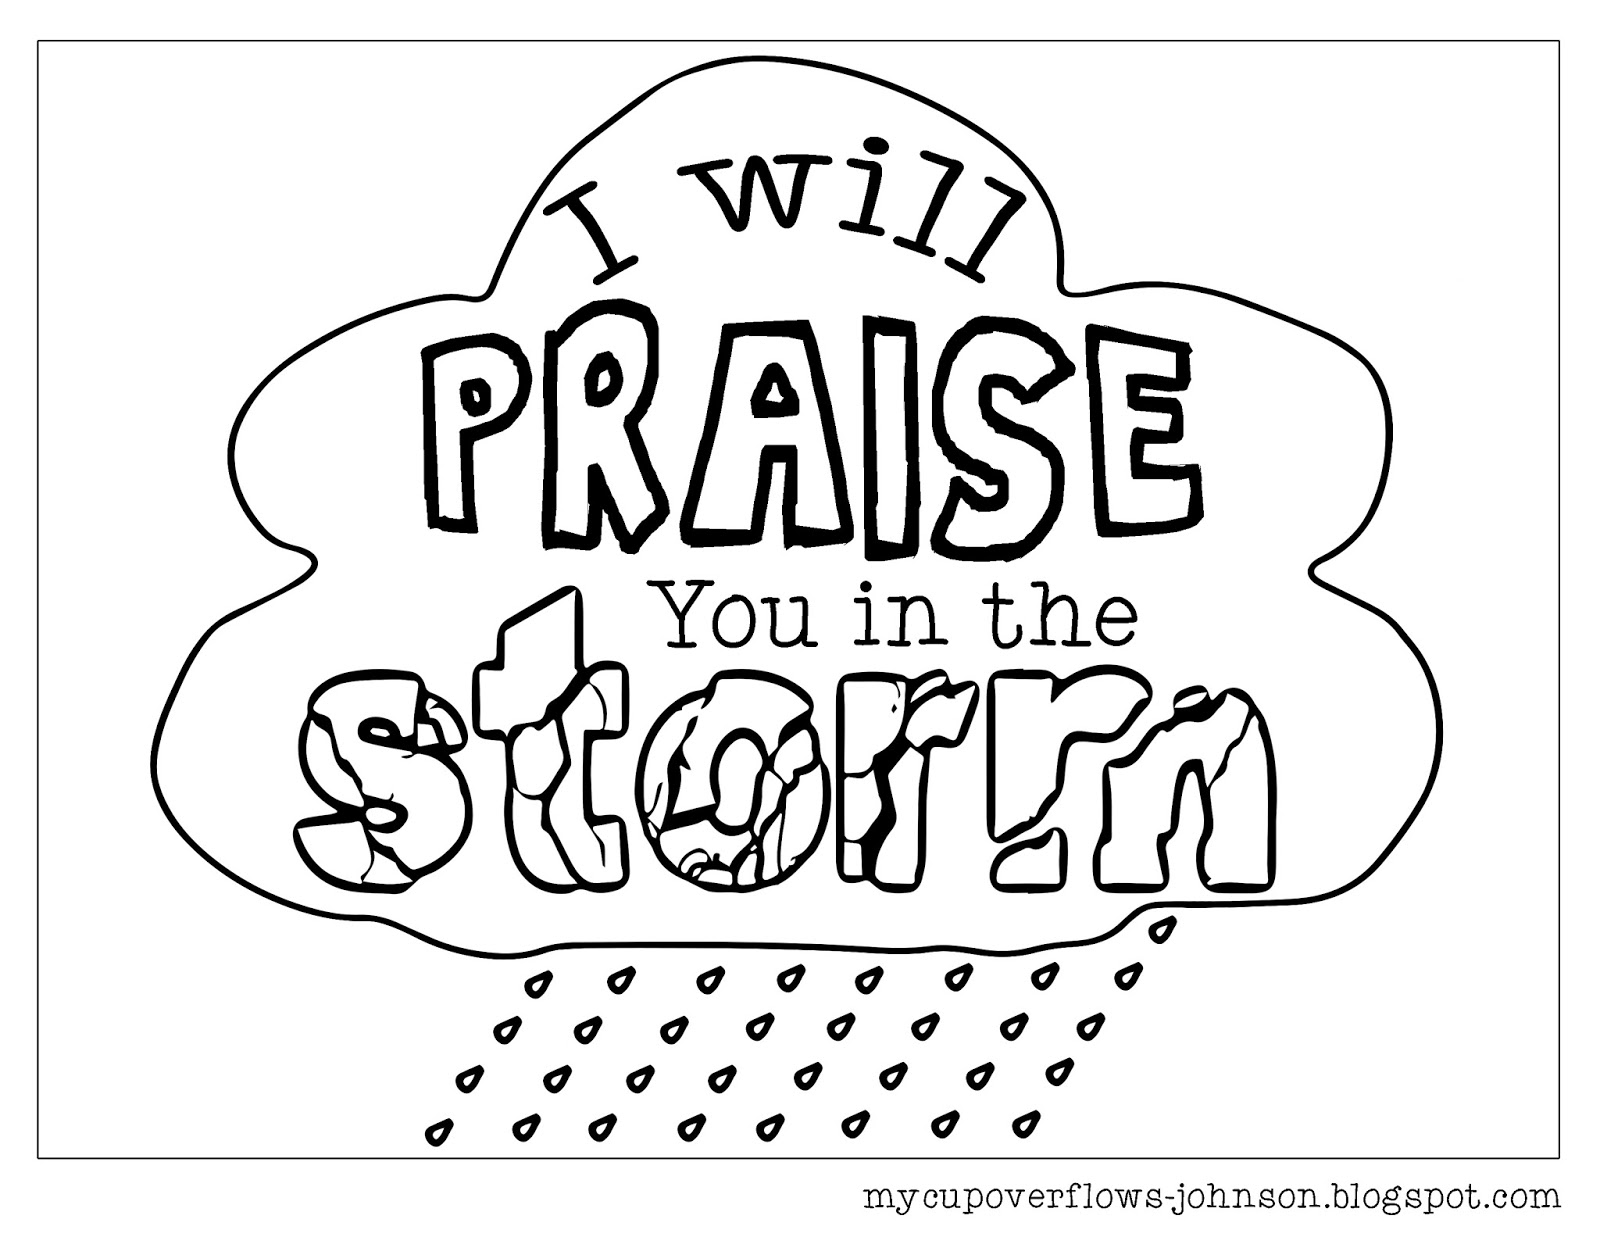 free inspirational bible verse coloring pages - Psalm 98 Coloring Page